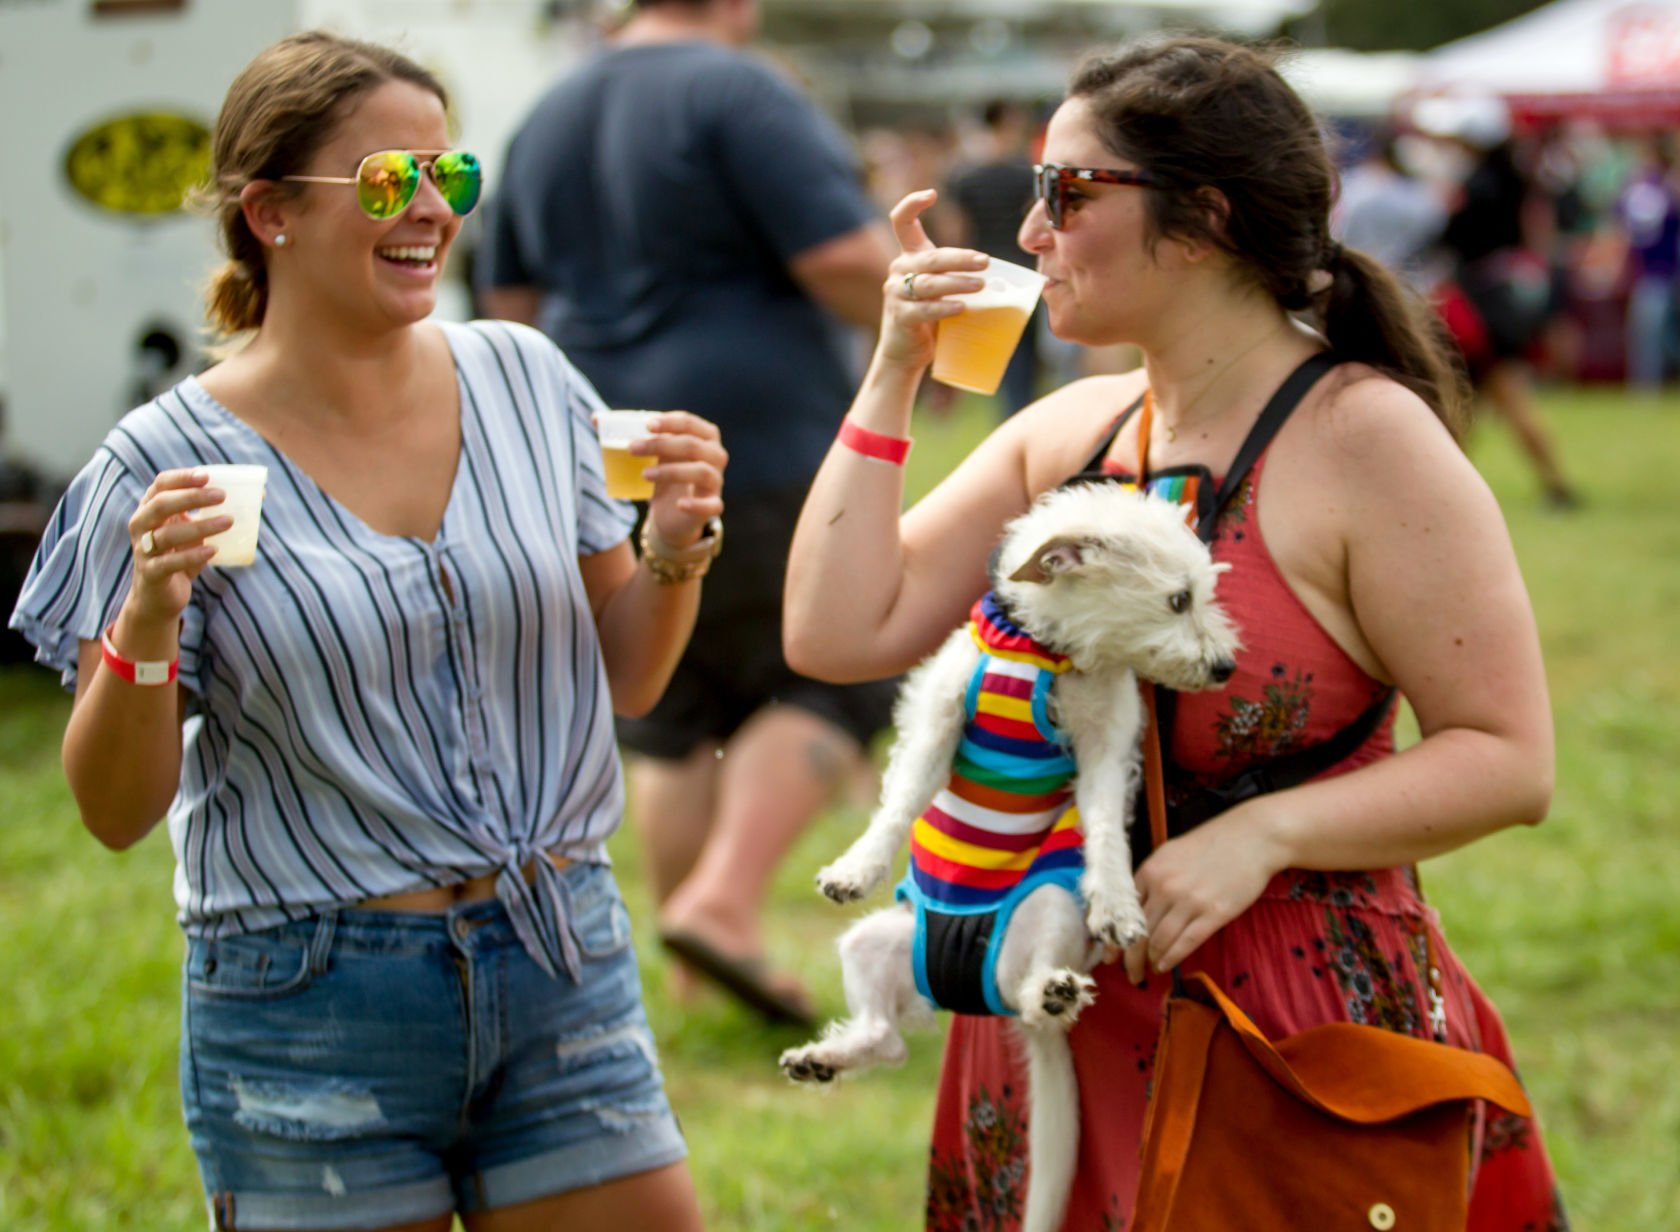 NOLA on Tap features 400 beers and raises funds for the Louisiana SPCA